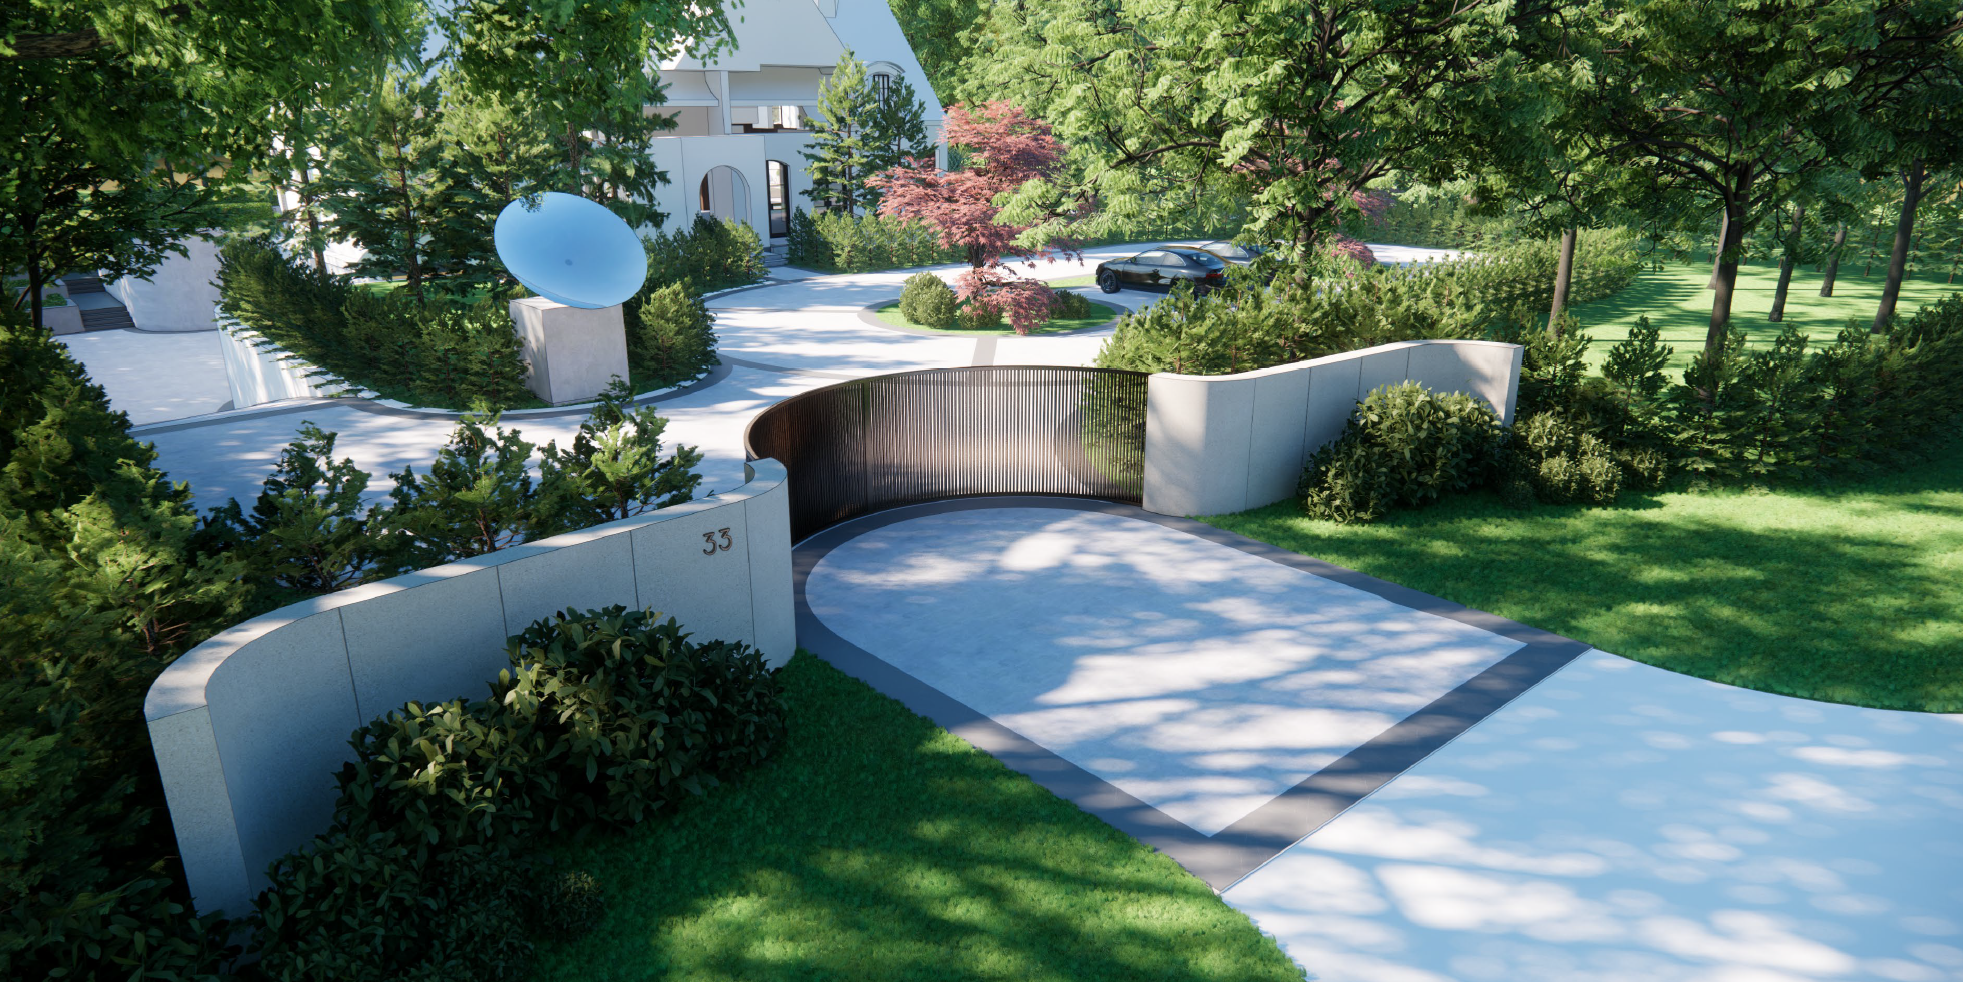 In the heart of Toronto's very exclusive Humber Valley comes a contemporary estate featuring innovative experiential programing and exquisite detailing.